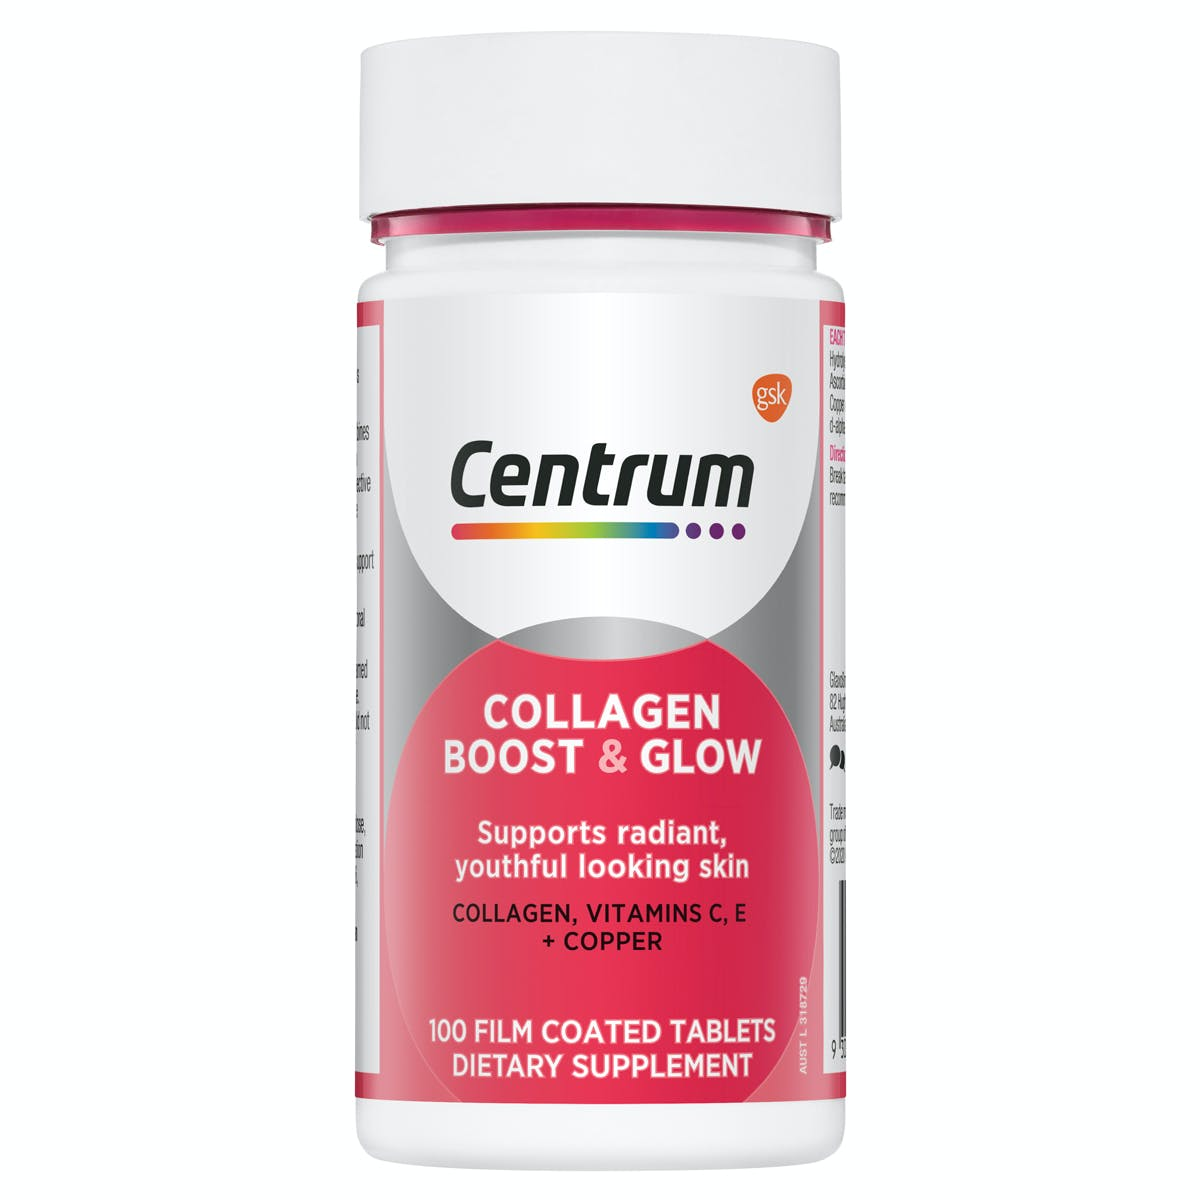 Bottle of Collagen Boost & Glow from the Centrum Benefits Blend (50 tablets).